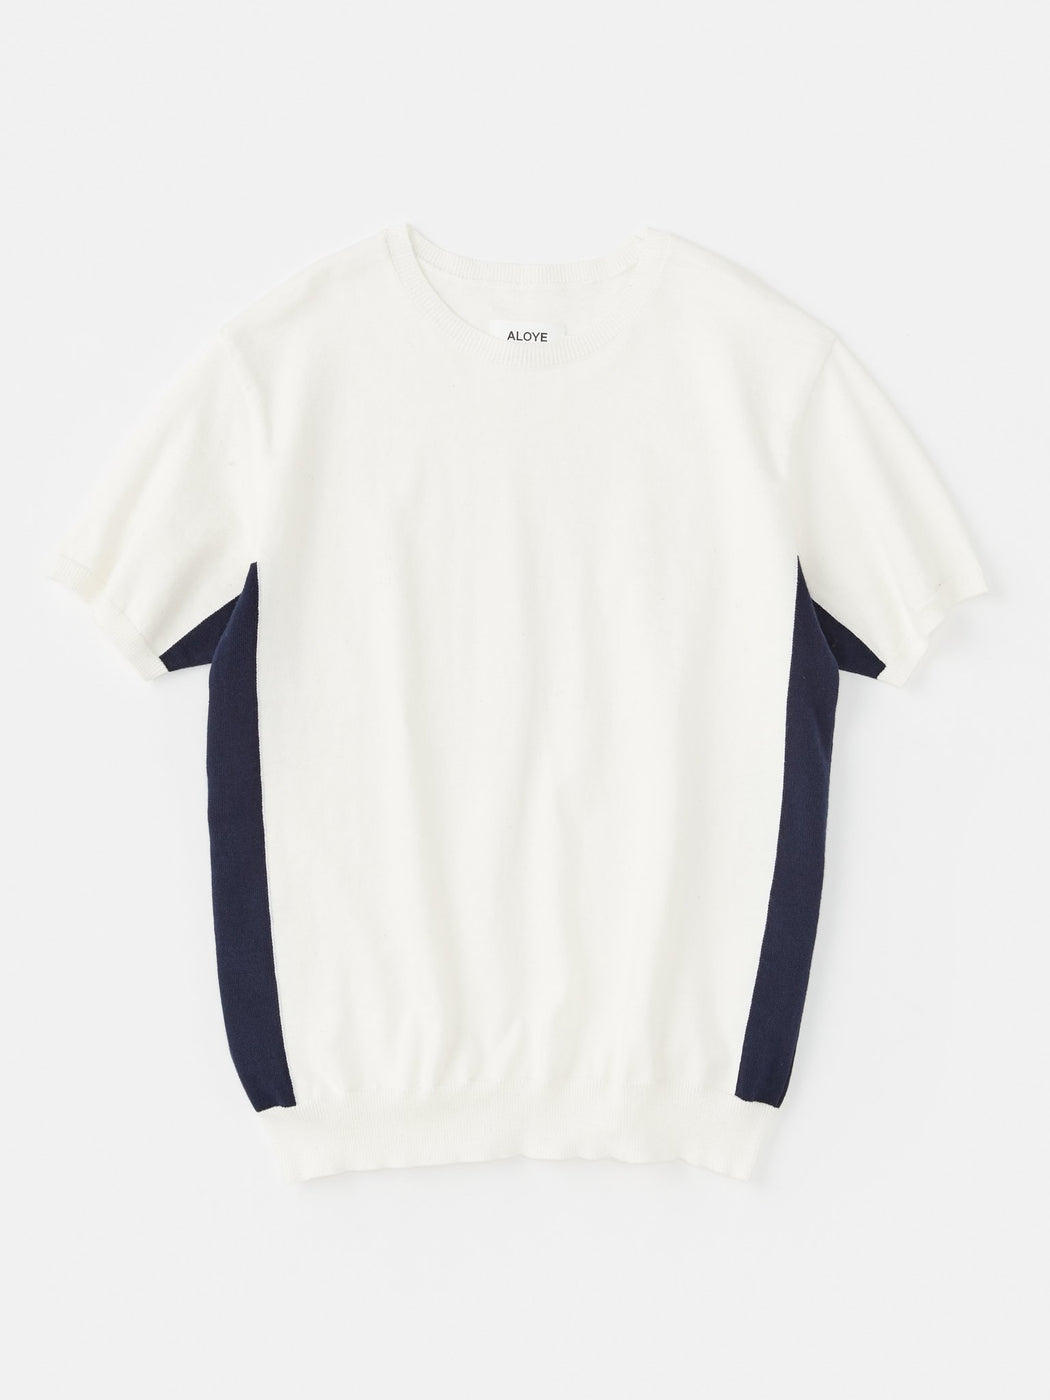 ALOYE G.F.G.S. Short Sleeve Cotton Sweater White-Navy